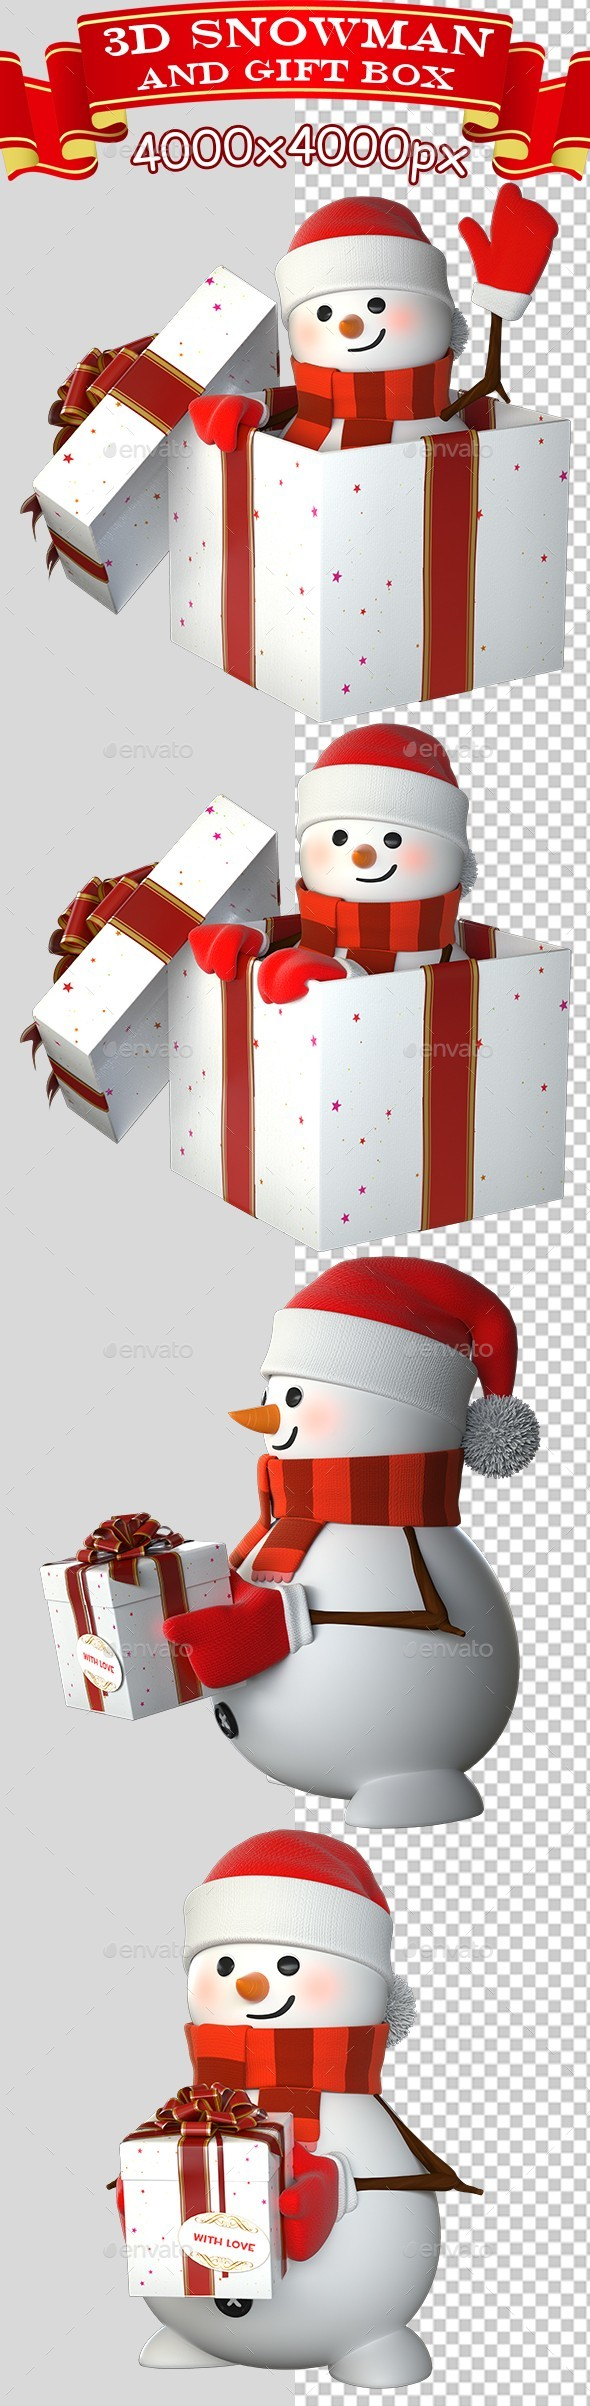 GraphicRiver 3D Snowman And Gift Box 21078447